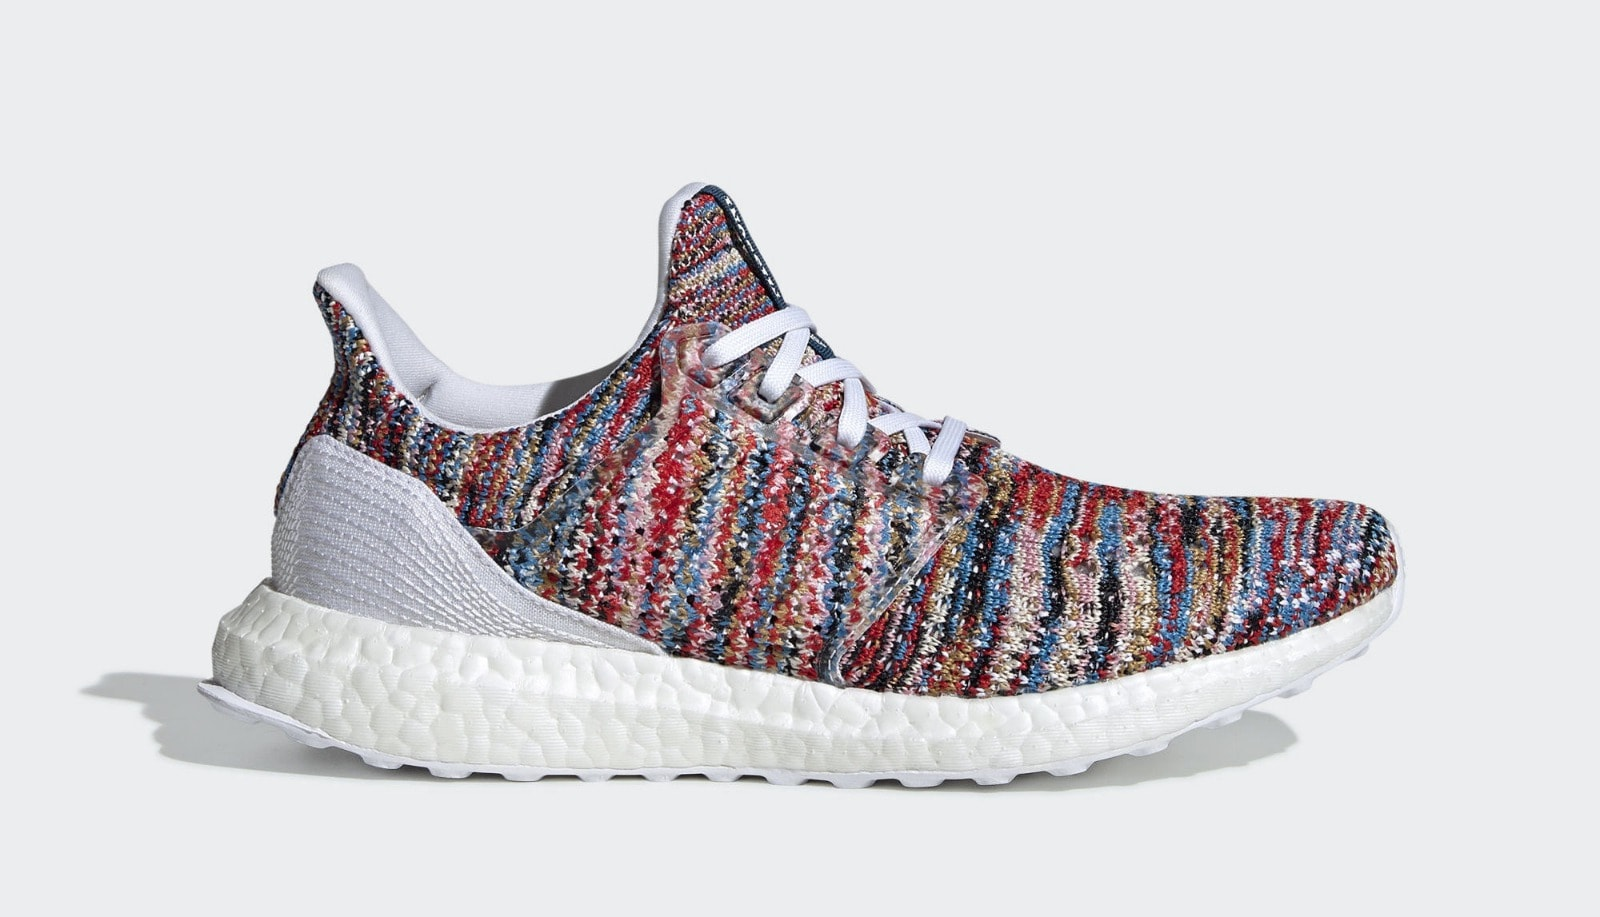 4c41a3e90 Missoni x adidas Ultra Boost Clima Multicolor Ftwr White Shock Cyan April  25